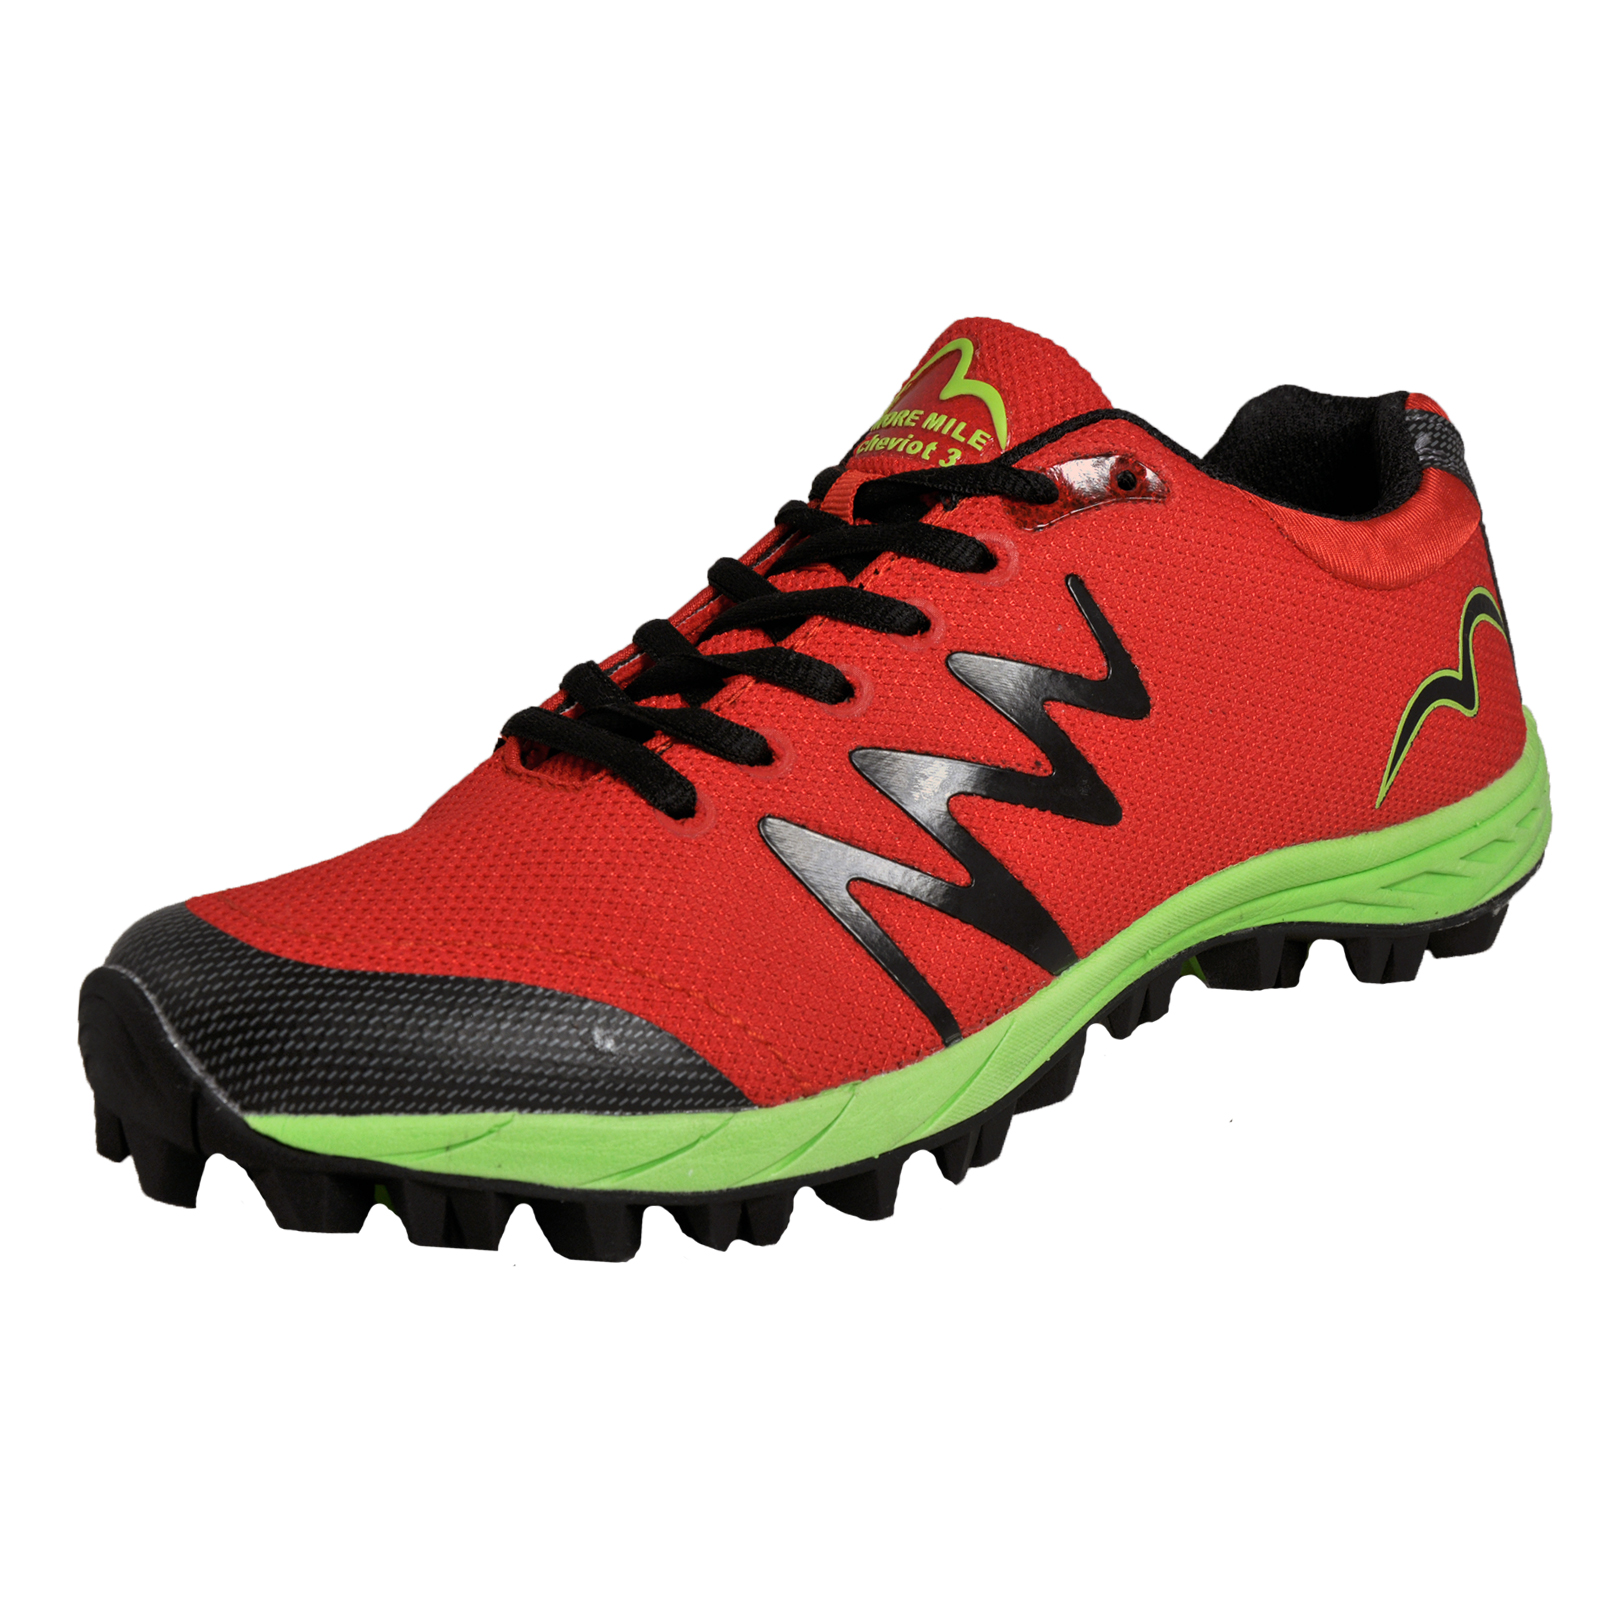 More Mile Cheviot 3 Mens All Terrain Trail Running Shoes